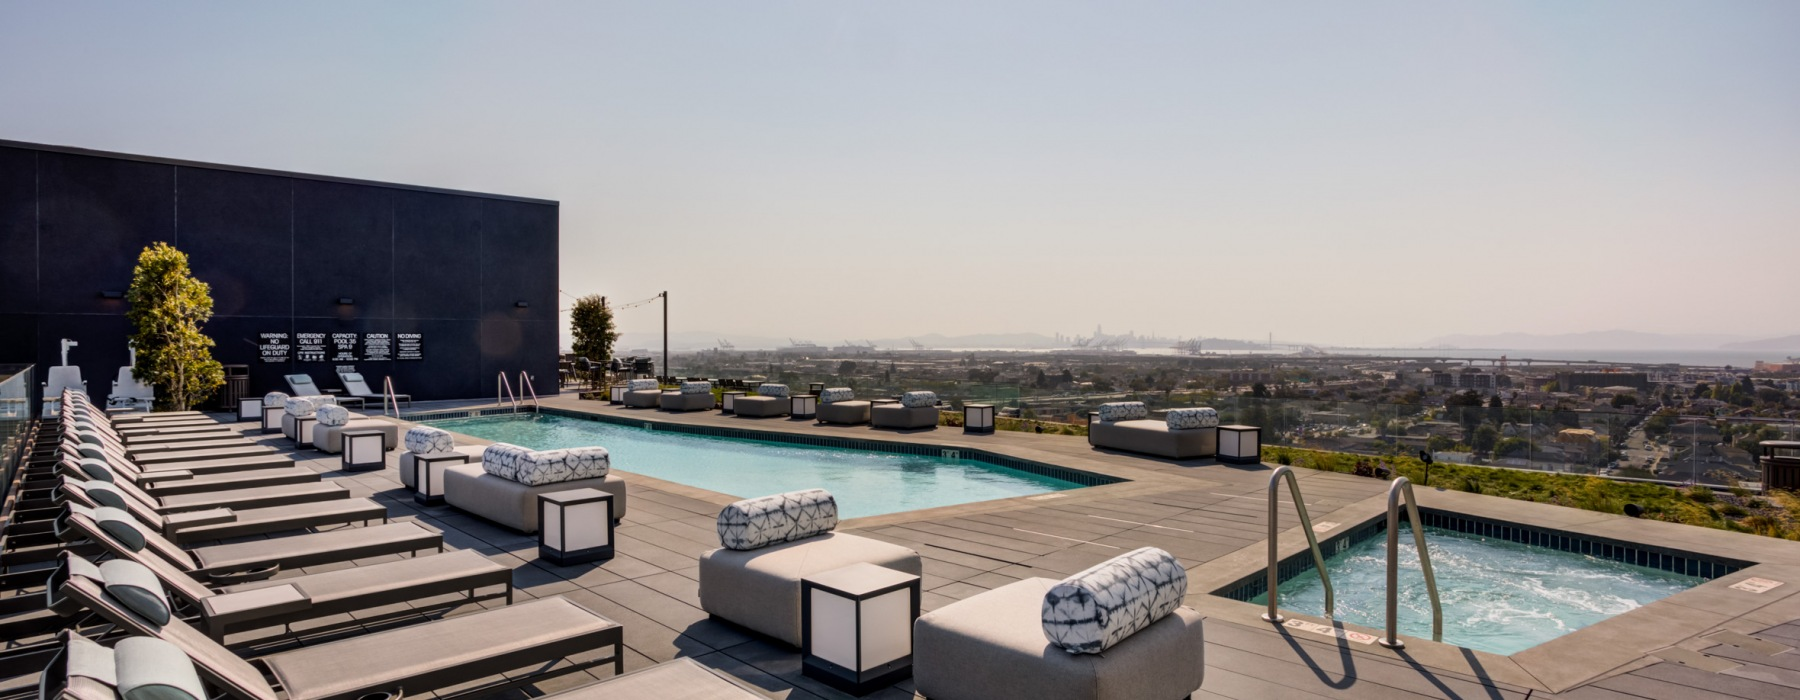 Outdoor pool and jacuzzi on the 15th floor overlooking the Oakland and San Francisco skylines